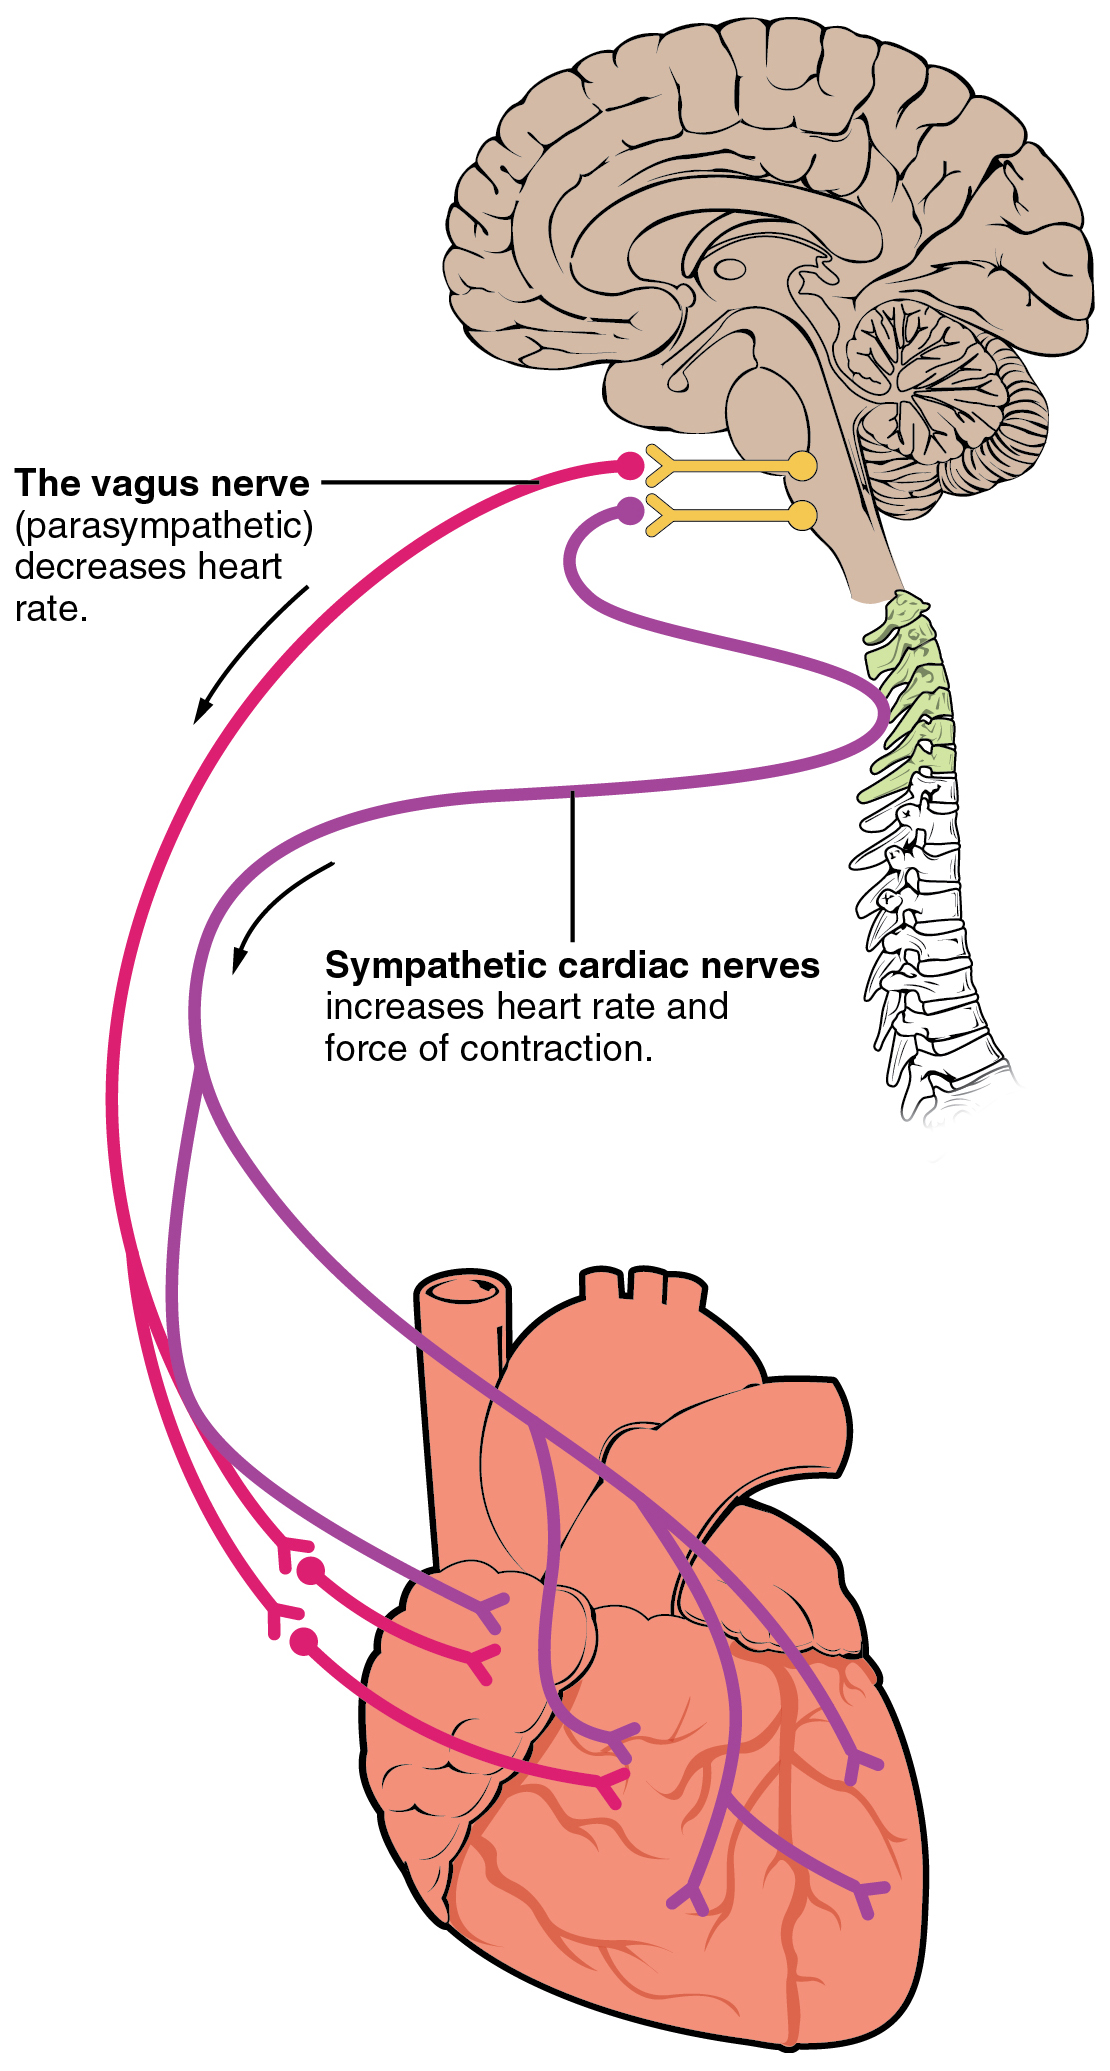 vagus nerve diagram car signal light wiring location in chest lung